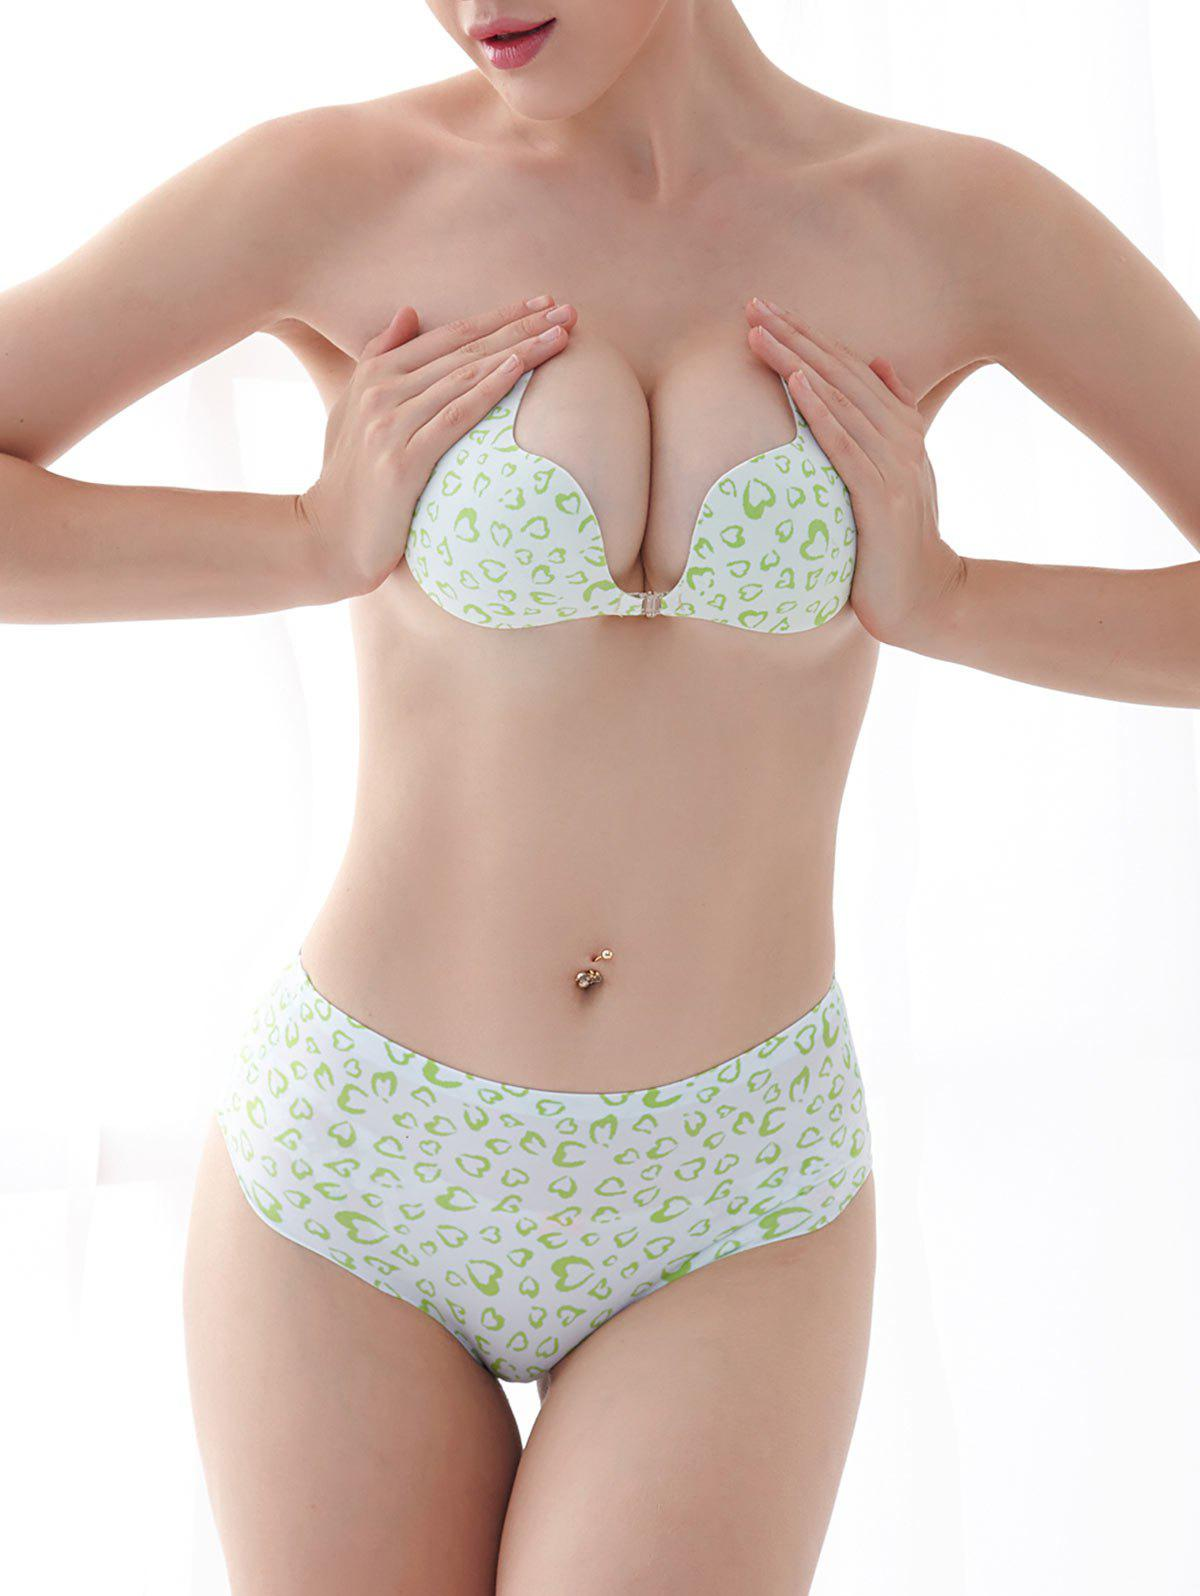 Pasties Strapless Sticky Bra - GREEN CUP D